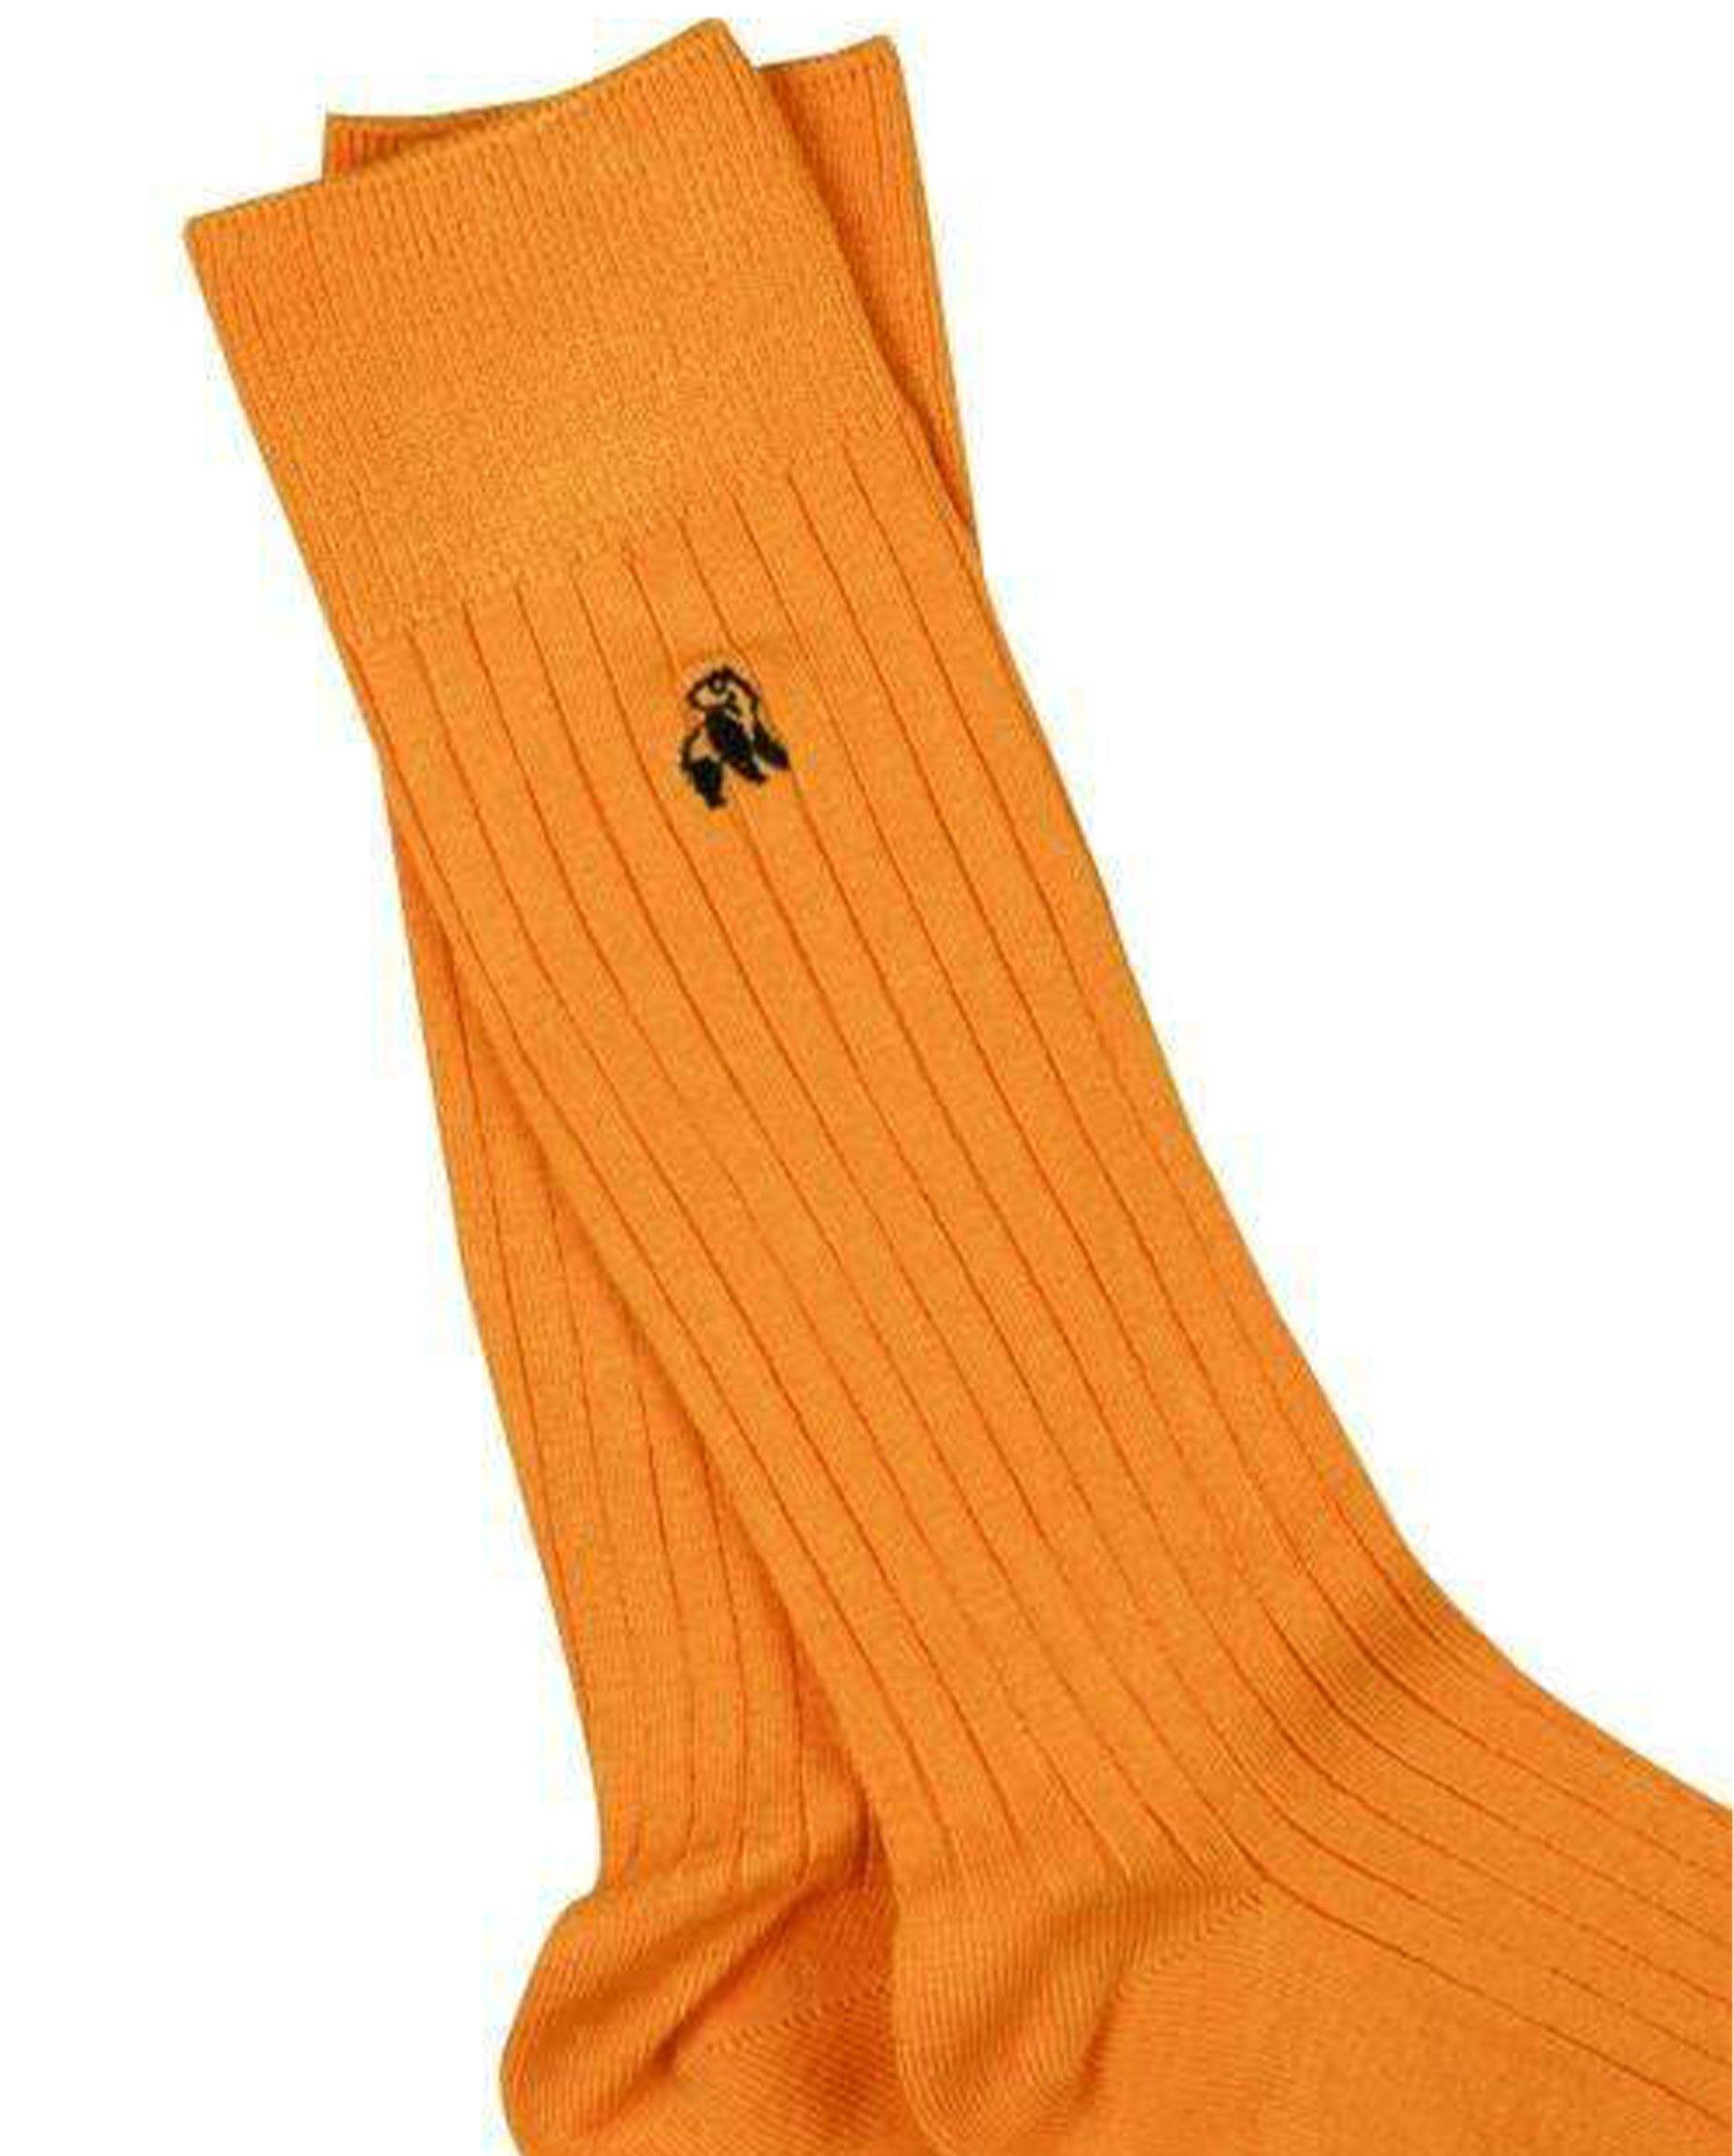 Tangerine Orange Bamboo Socks - Debonair